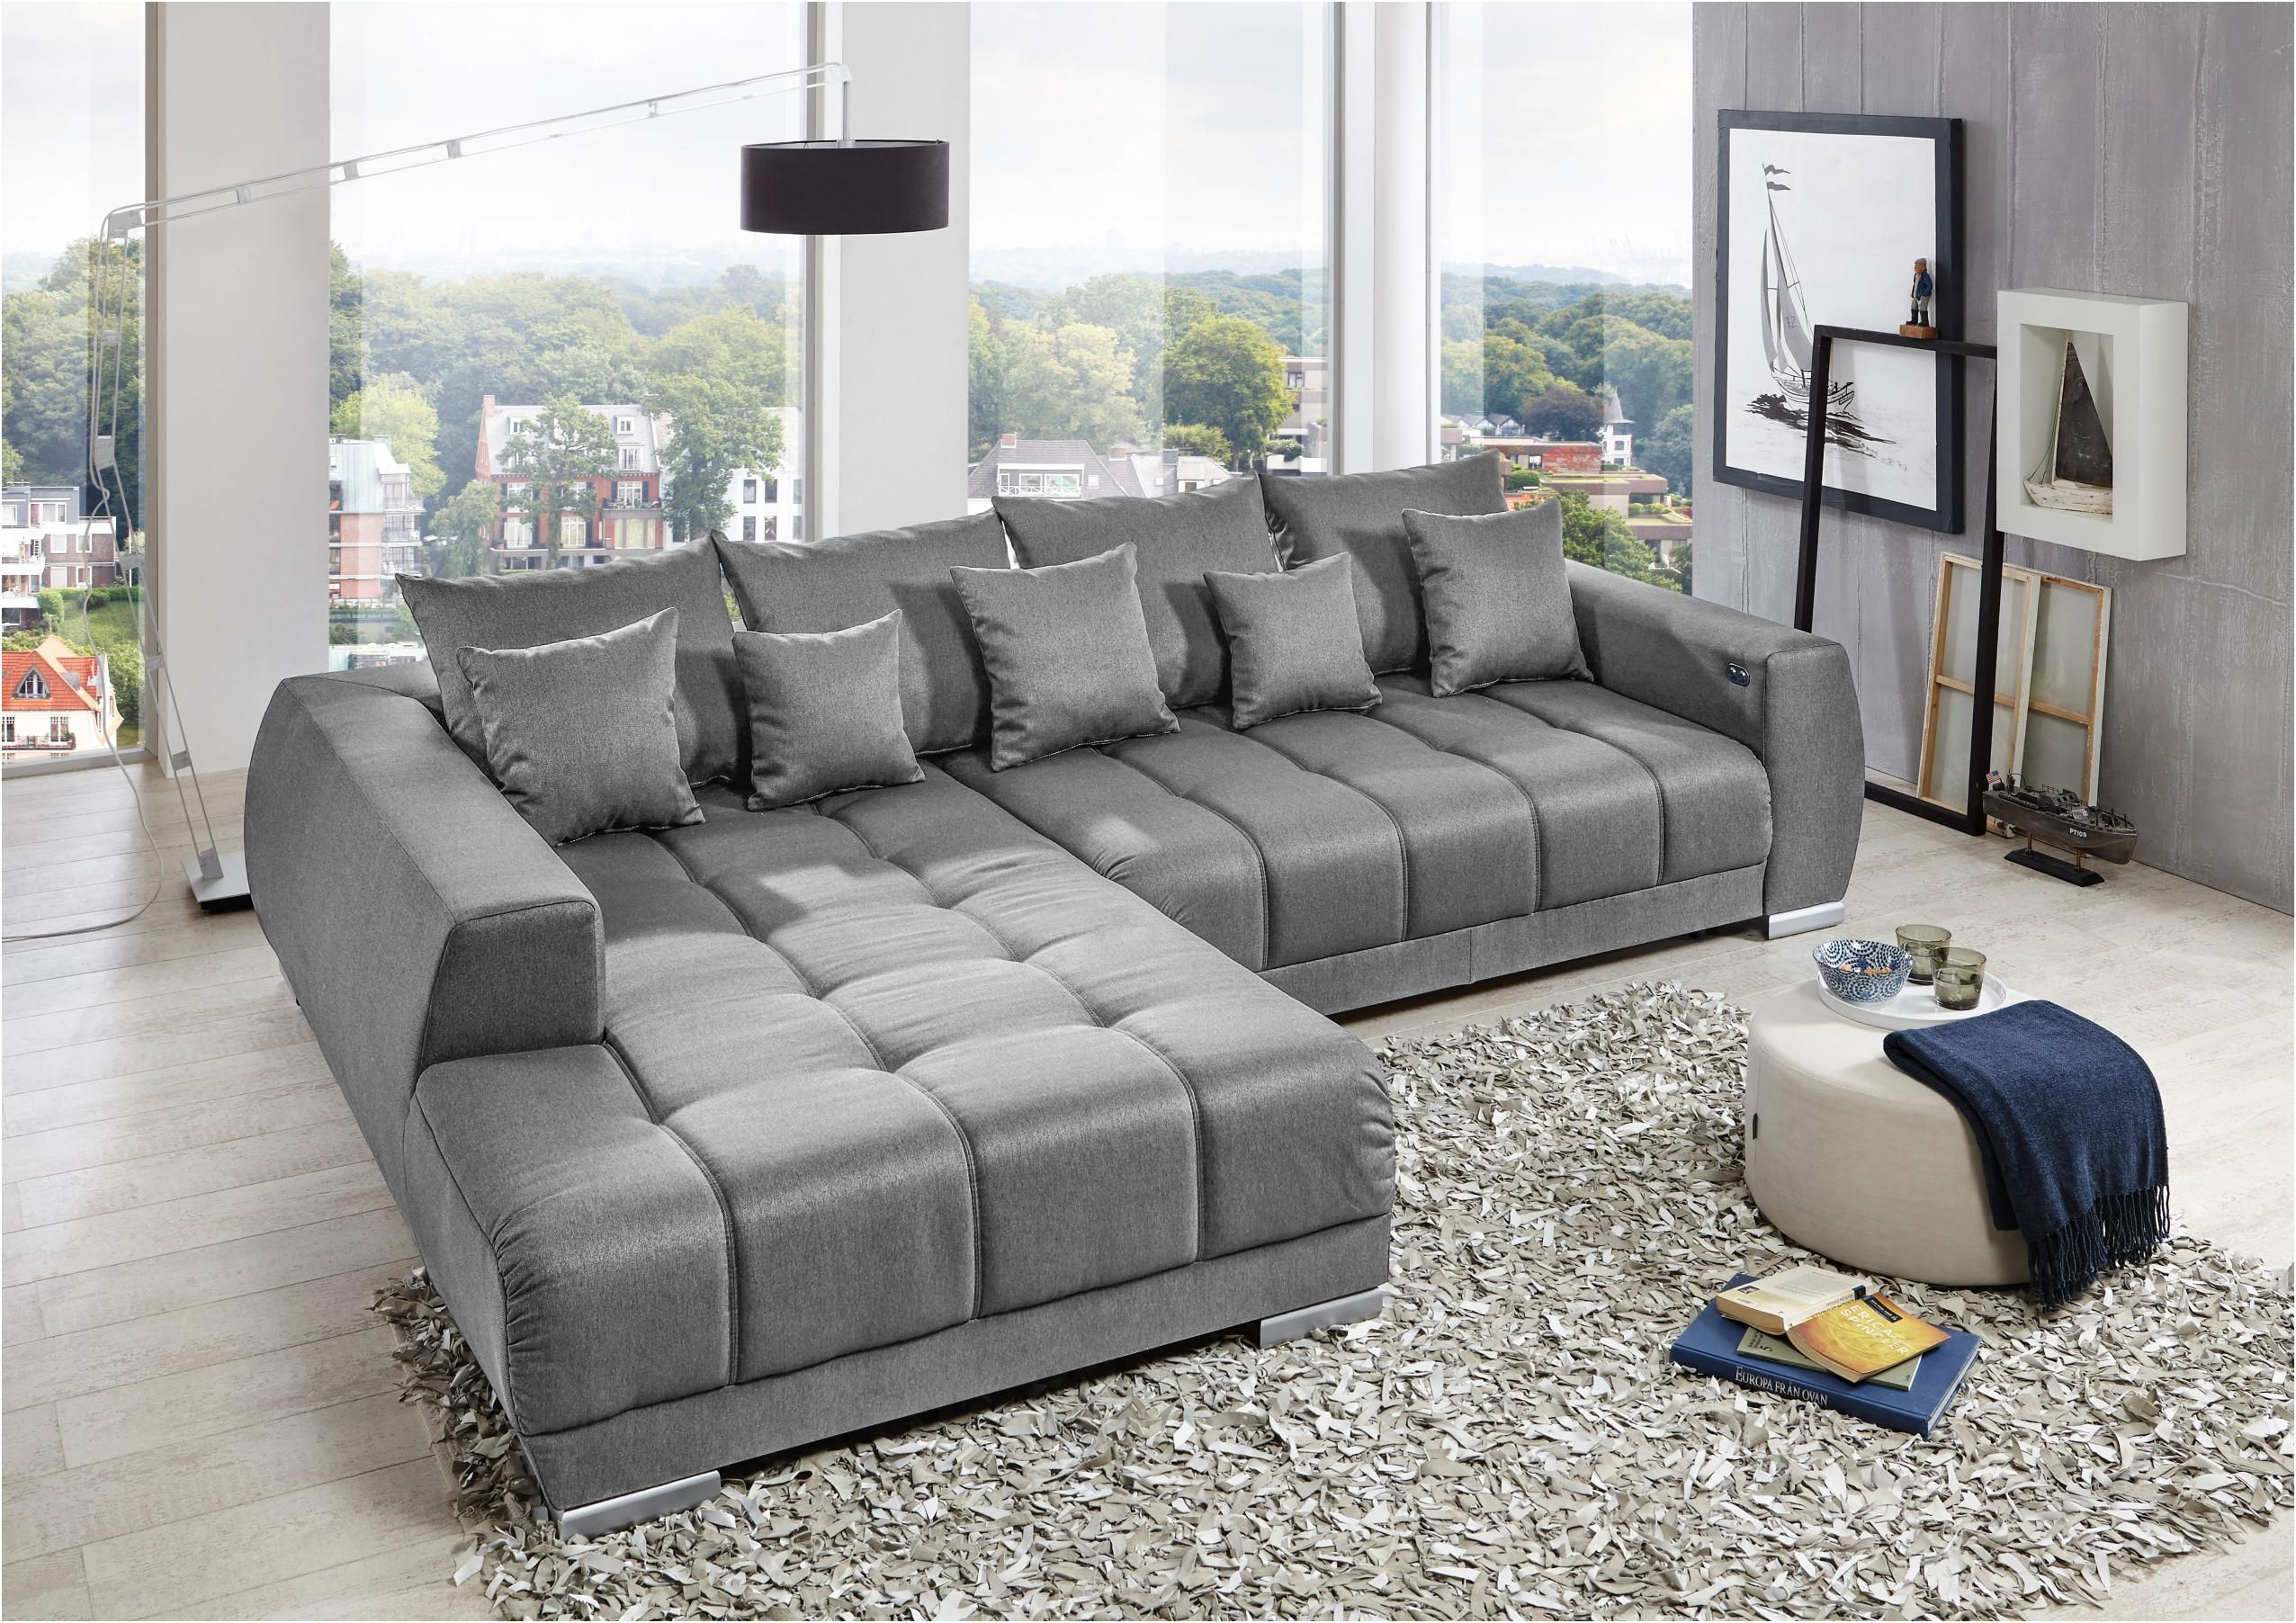 Genuine Kunstleder Wohnlandschaft In 2020 Grey Sectional Sofa Grey Sofa Living Room Gray Sofa Living